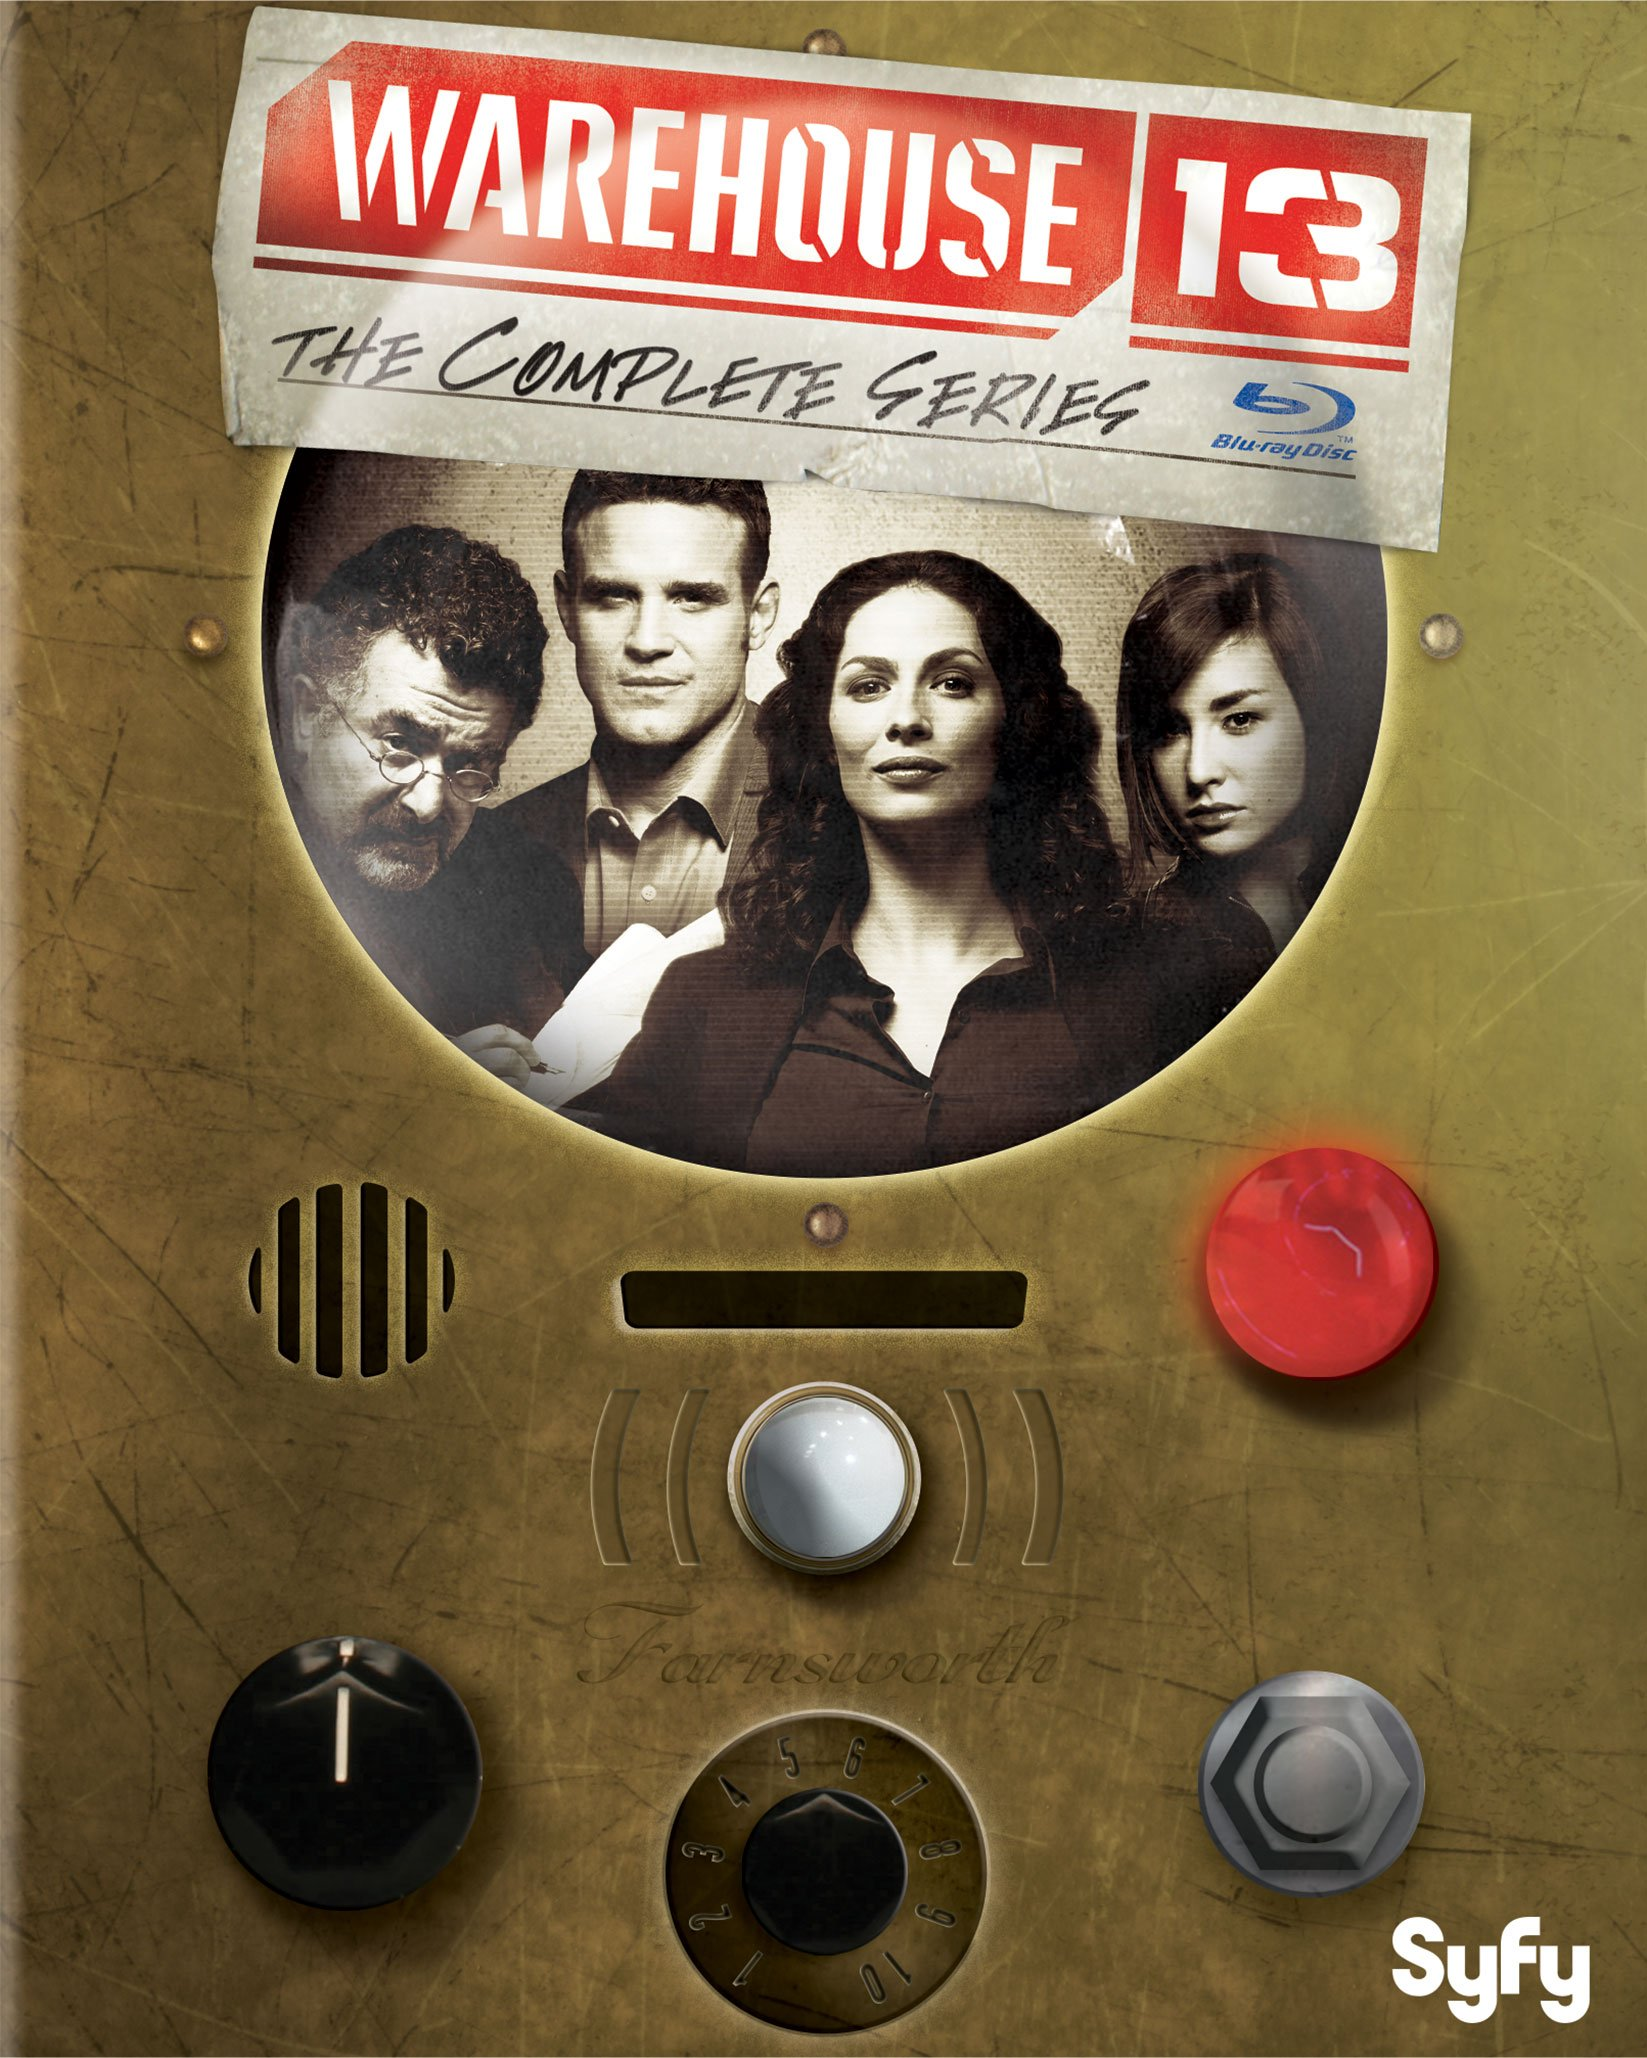 Warehouse 13: The Complete Series [Blu-ray] by UNI DIST CORP. (MCA)